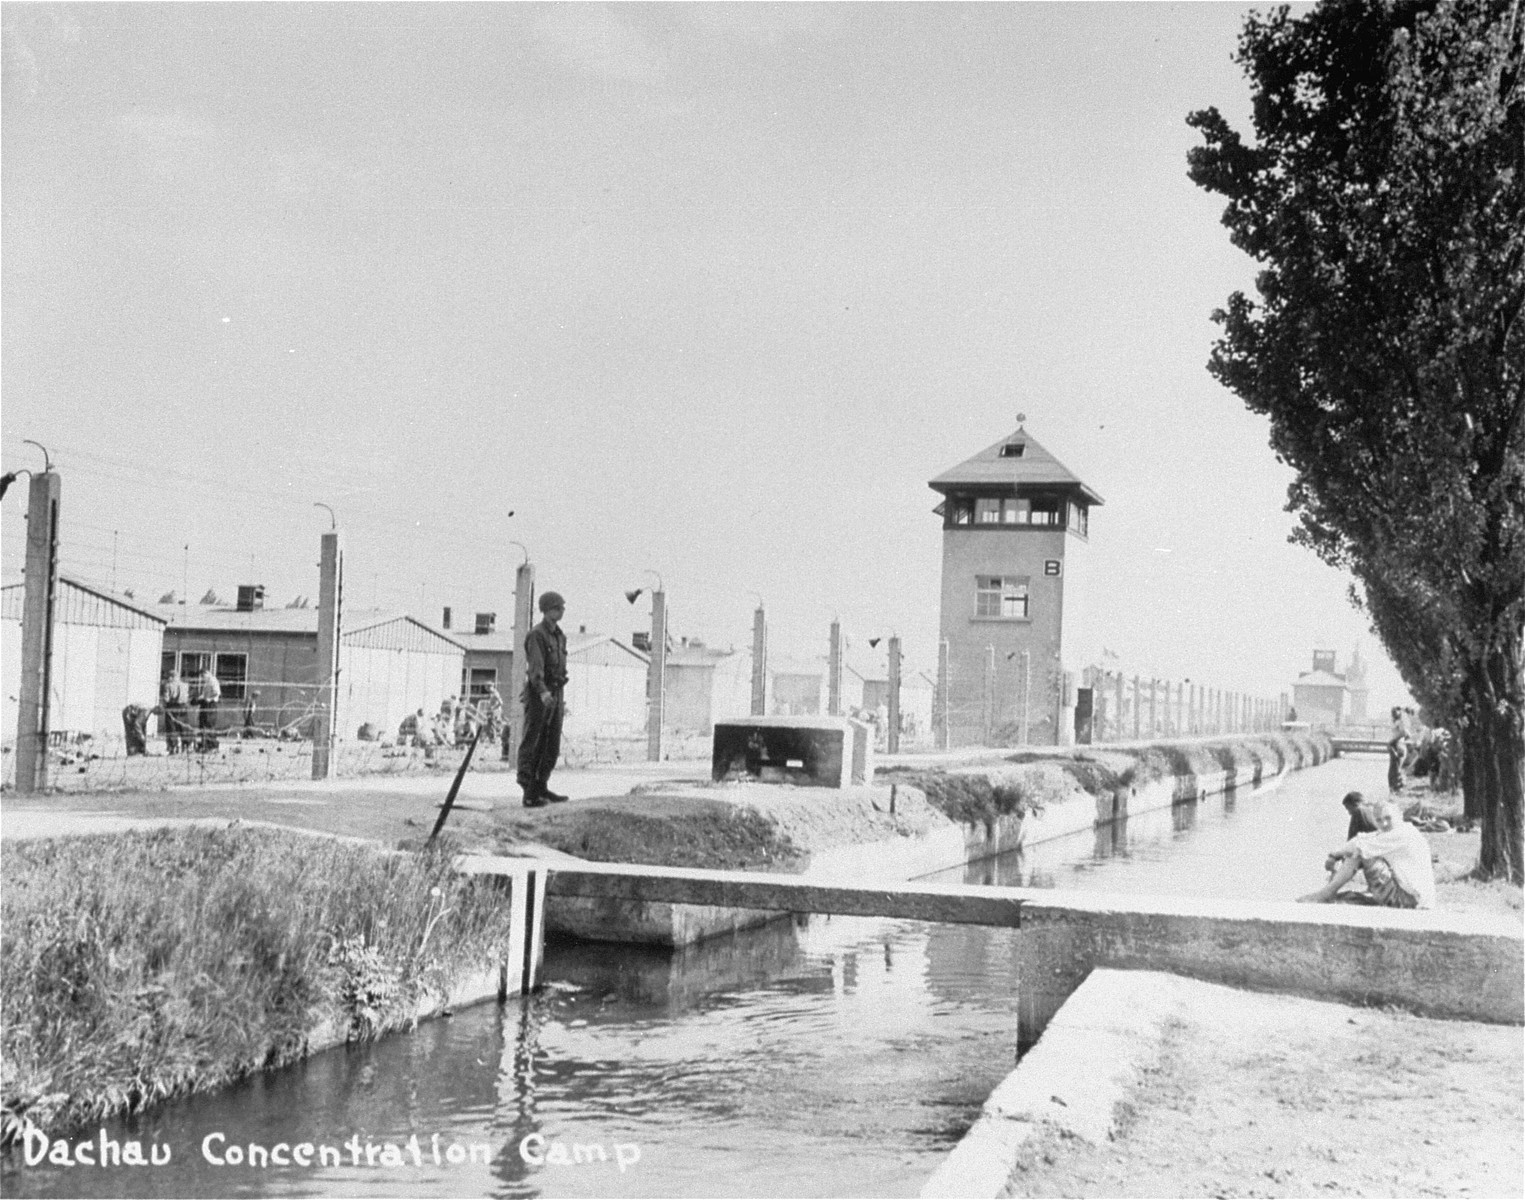 An American soldier stands guard outside of the Dachau concentration camp while survivors bathe in the moat.